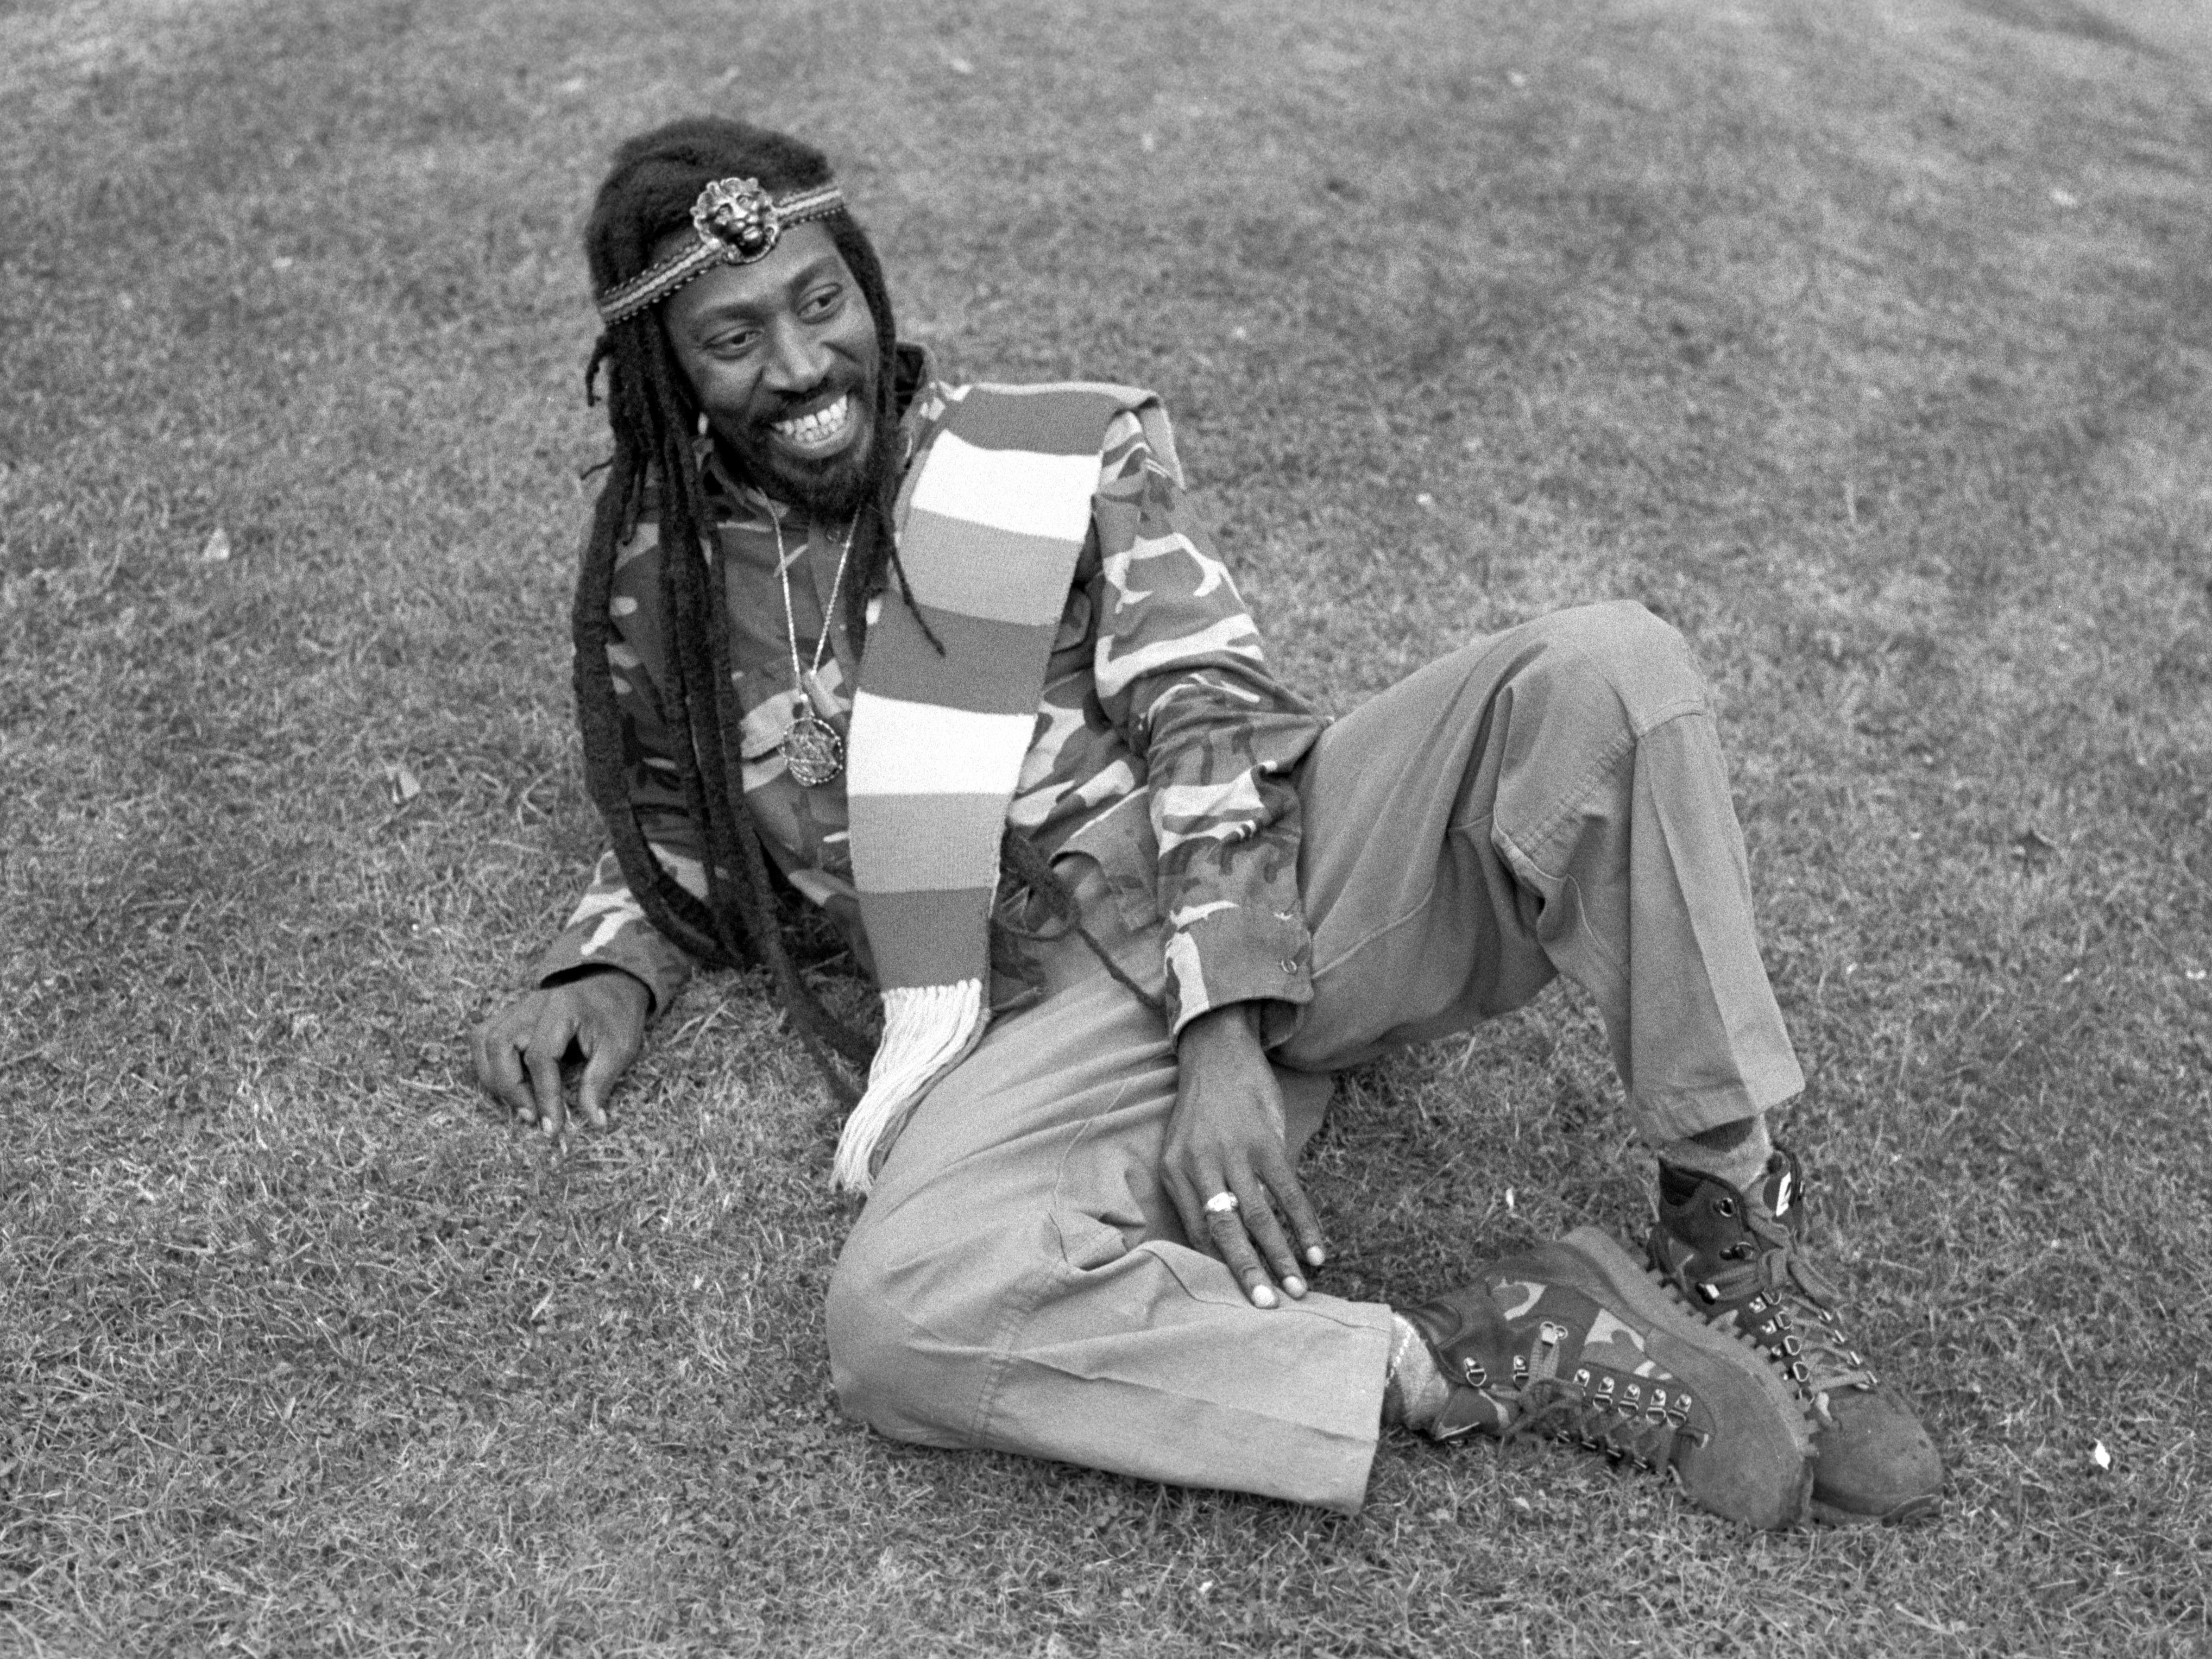 Bunny Wailer, Iconic Reggae Singer And Wailers Co-Founder, Has Died At Age 73